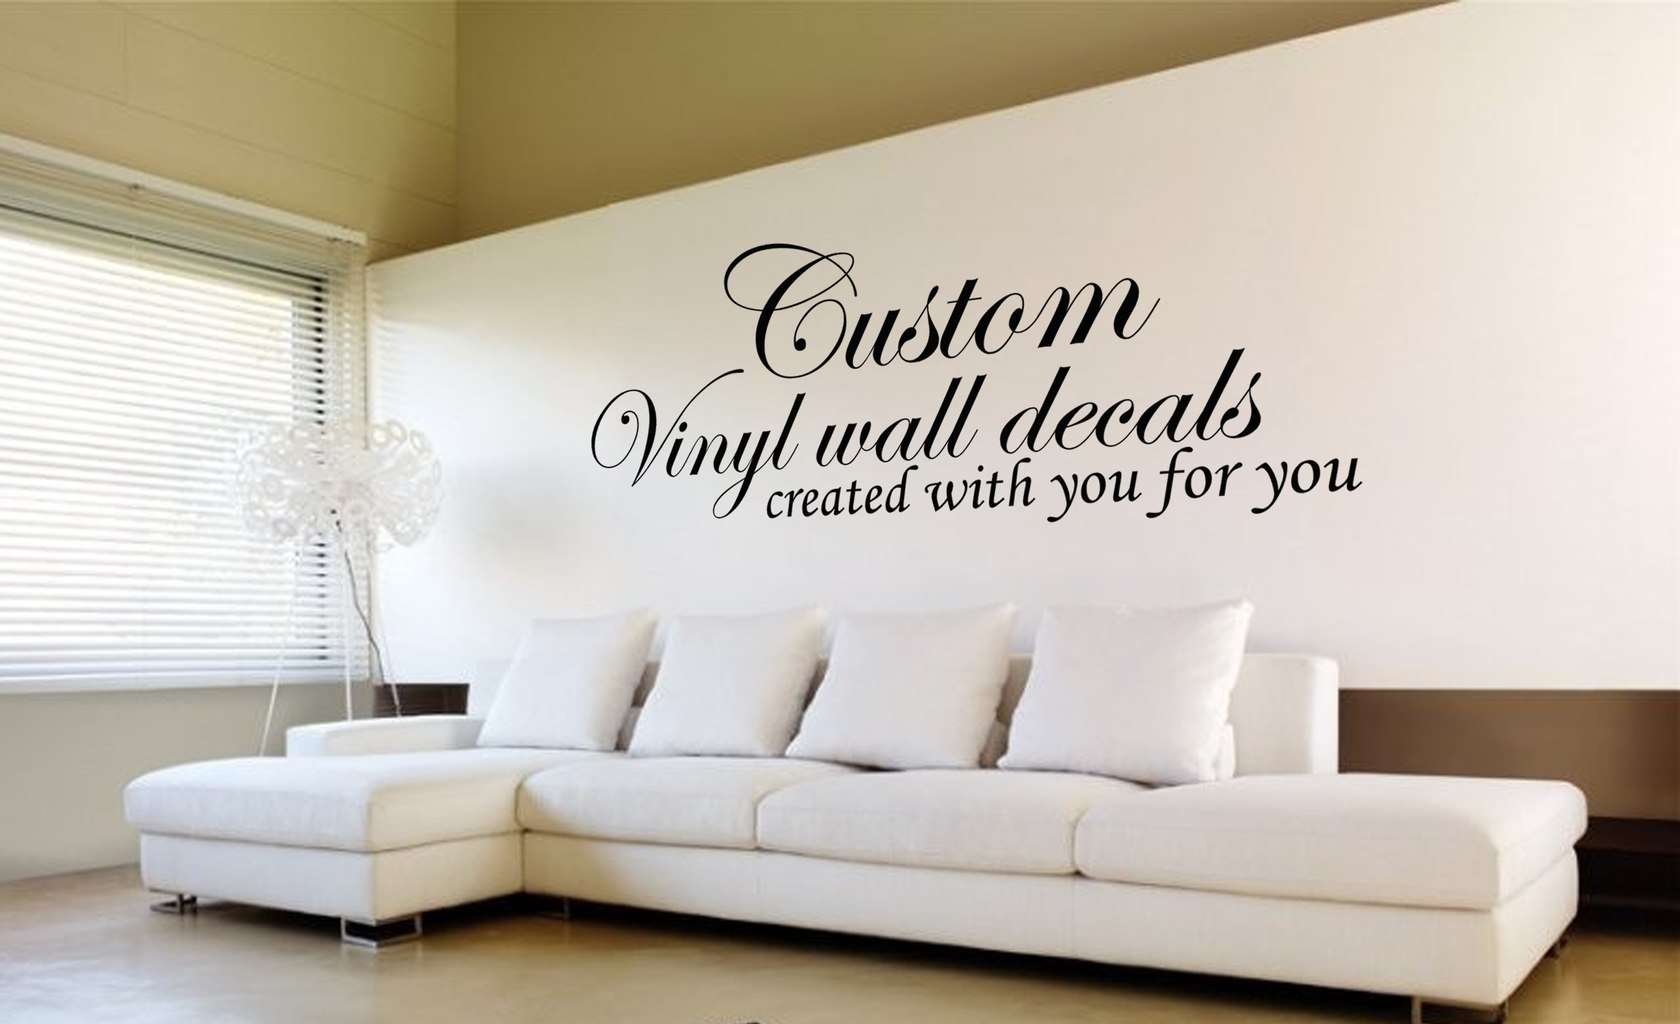 Design your own wall art decal wall art decal sticker for Create your own wall mural photo